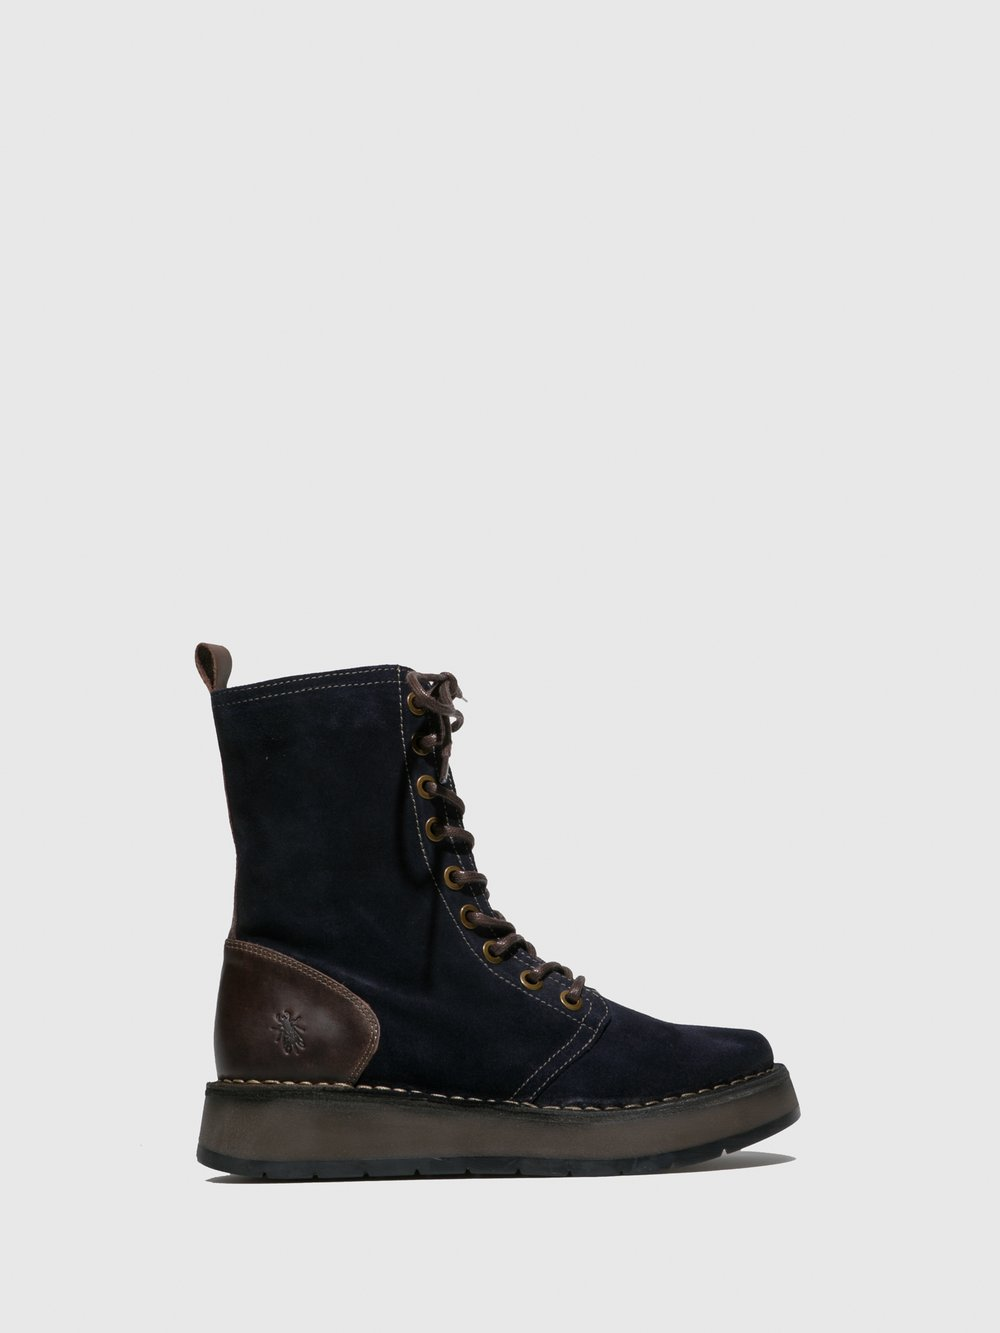 Fly London Rami Lace-up Zip Boot in Navy/Dark brown Suede.